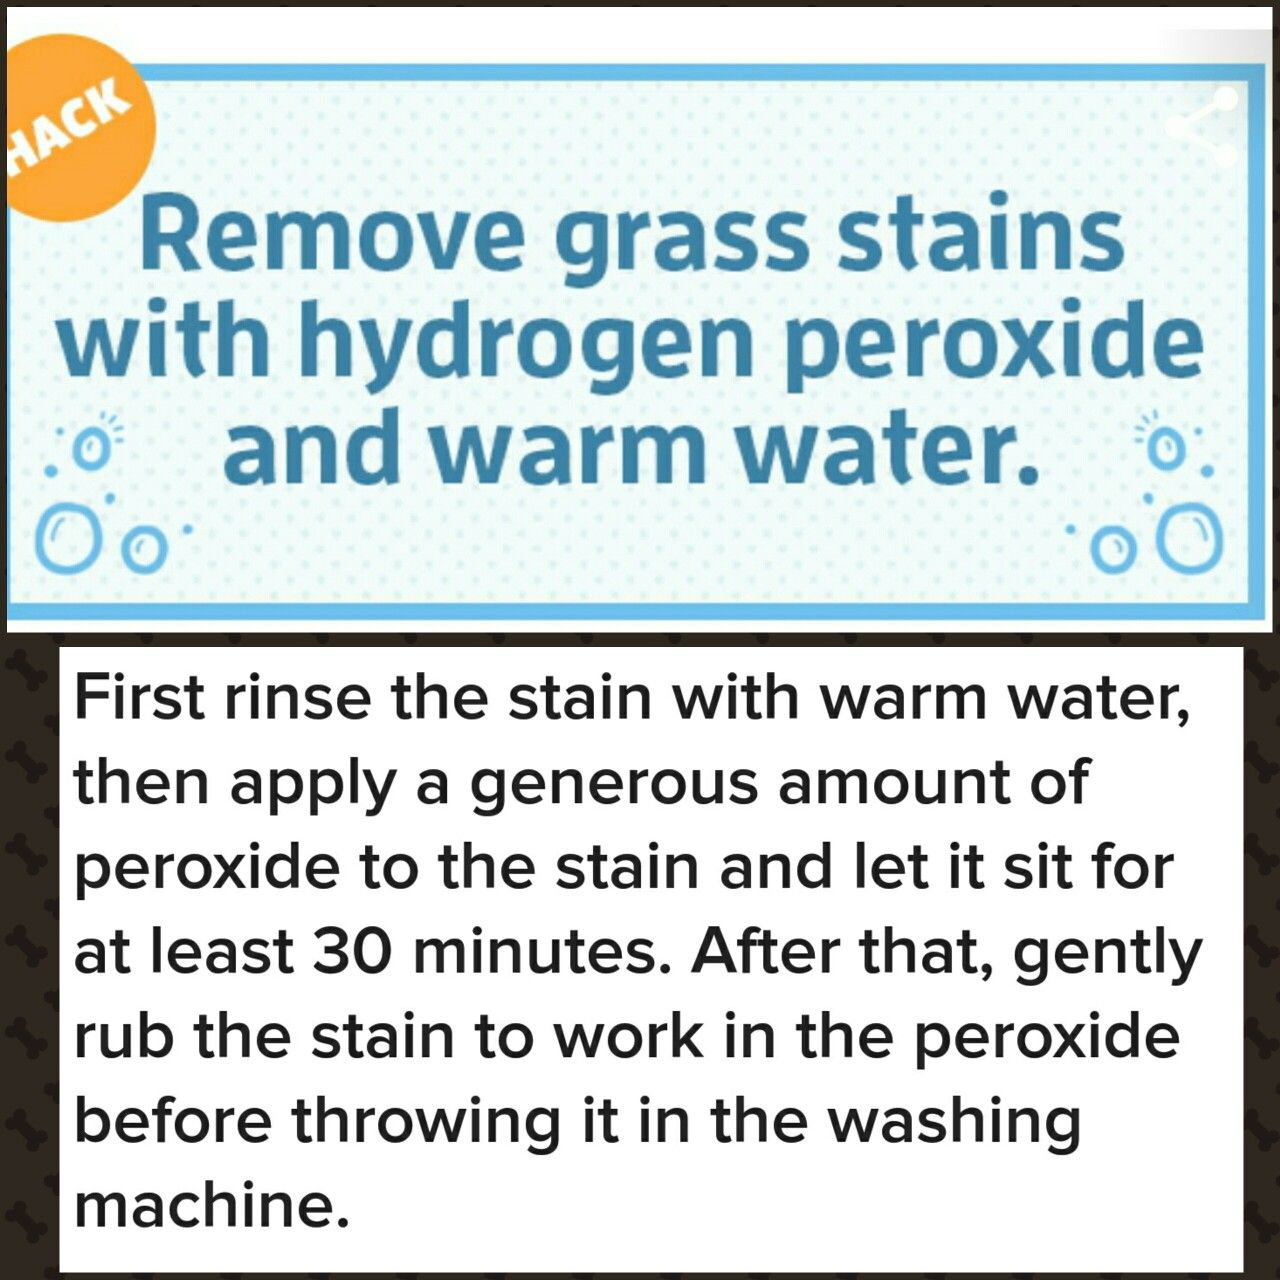 Pin by Carrie Bohnsack on Lifehackerisms Grass stain